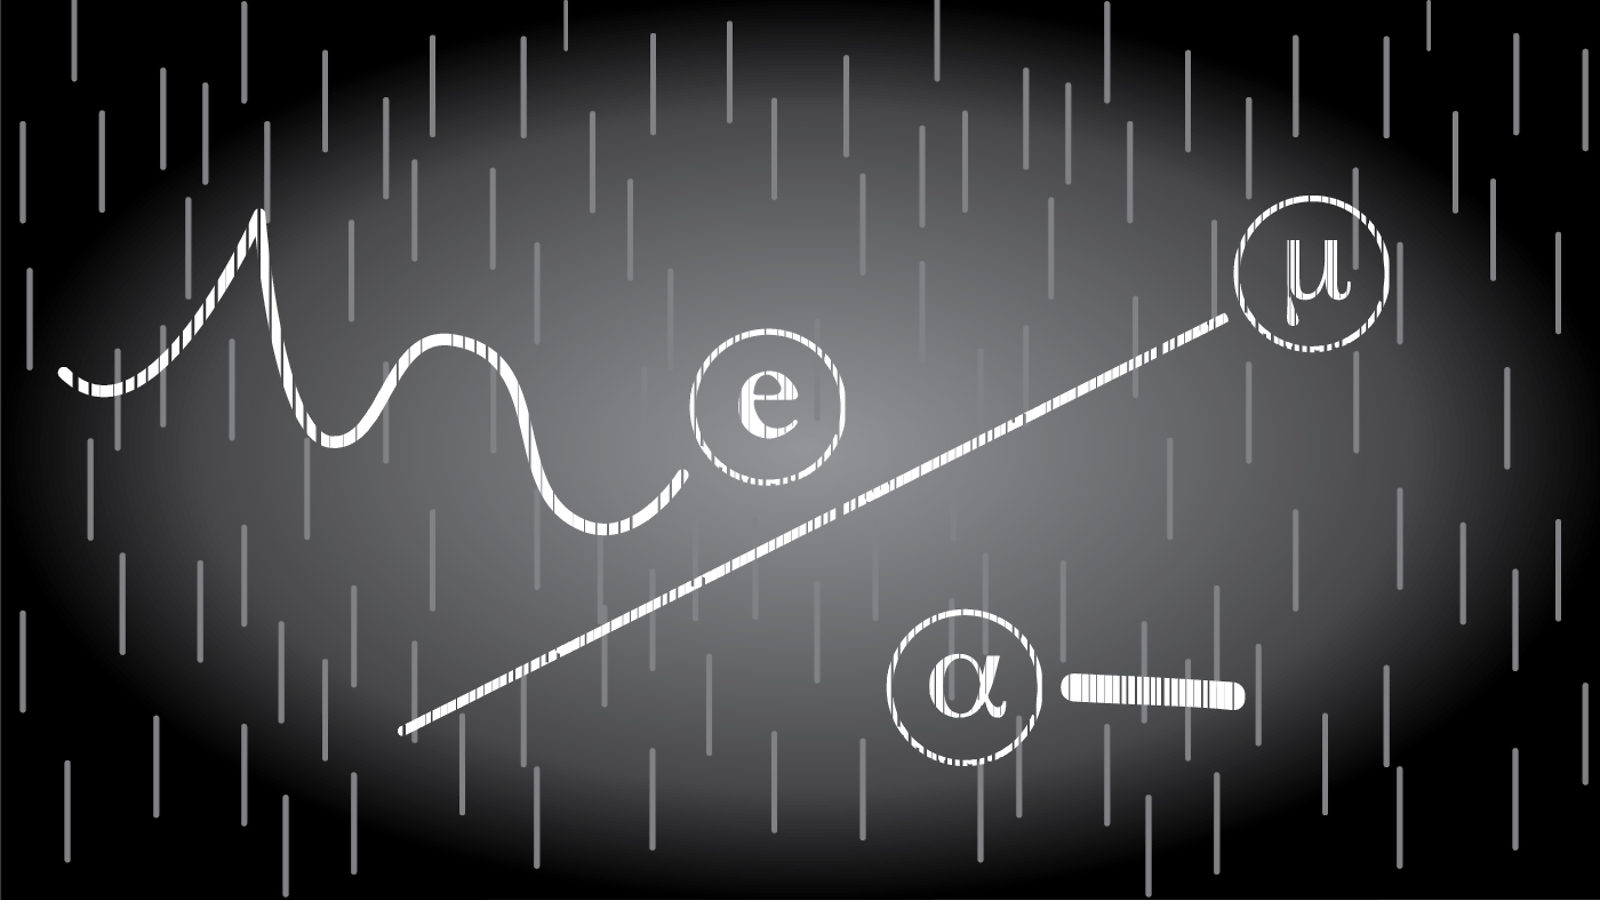 Illustration of Cloud Chamber Particles